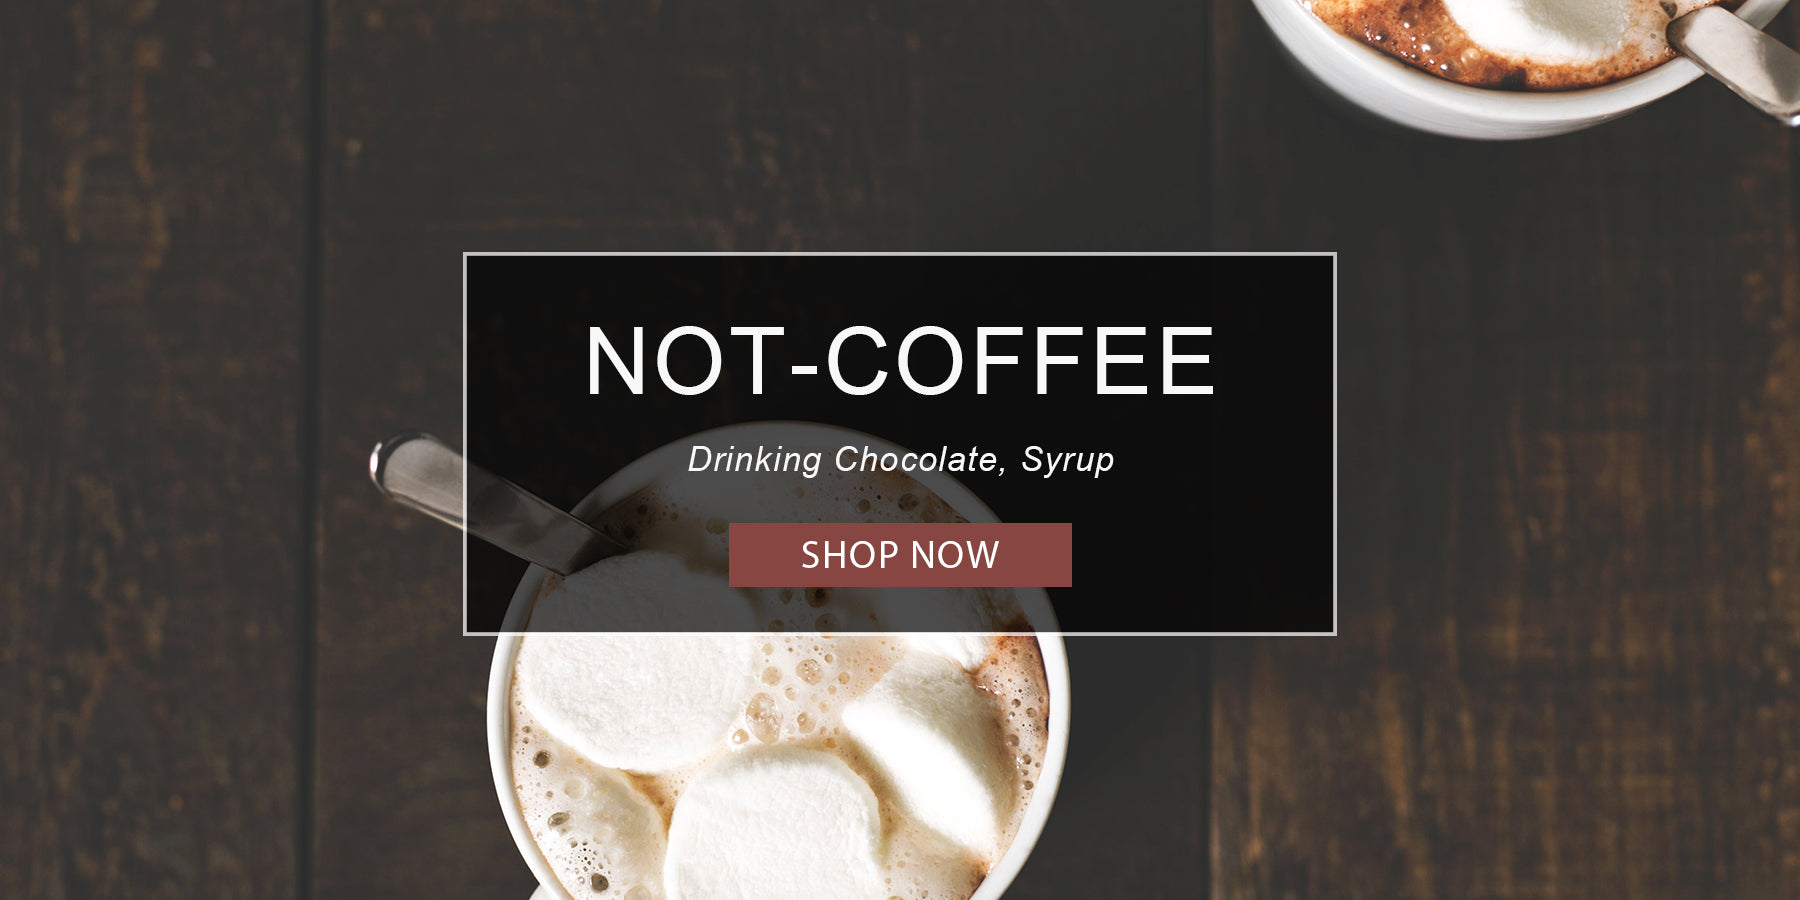 Shop drinking chocolate and coffee syrups online at The Coffee Collective NZ